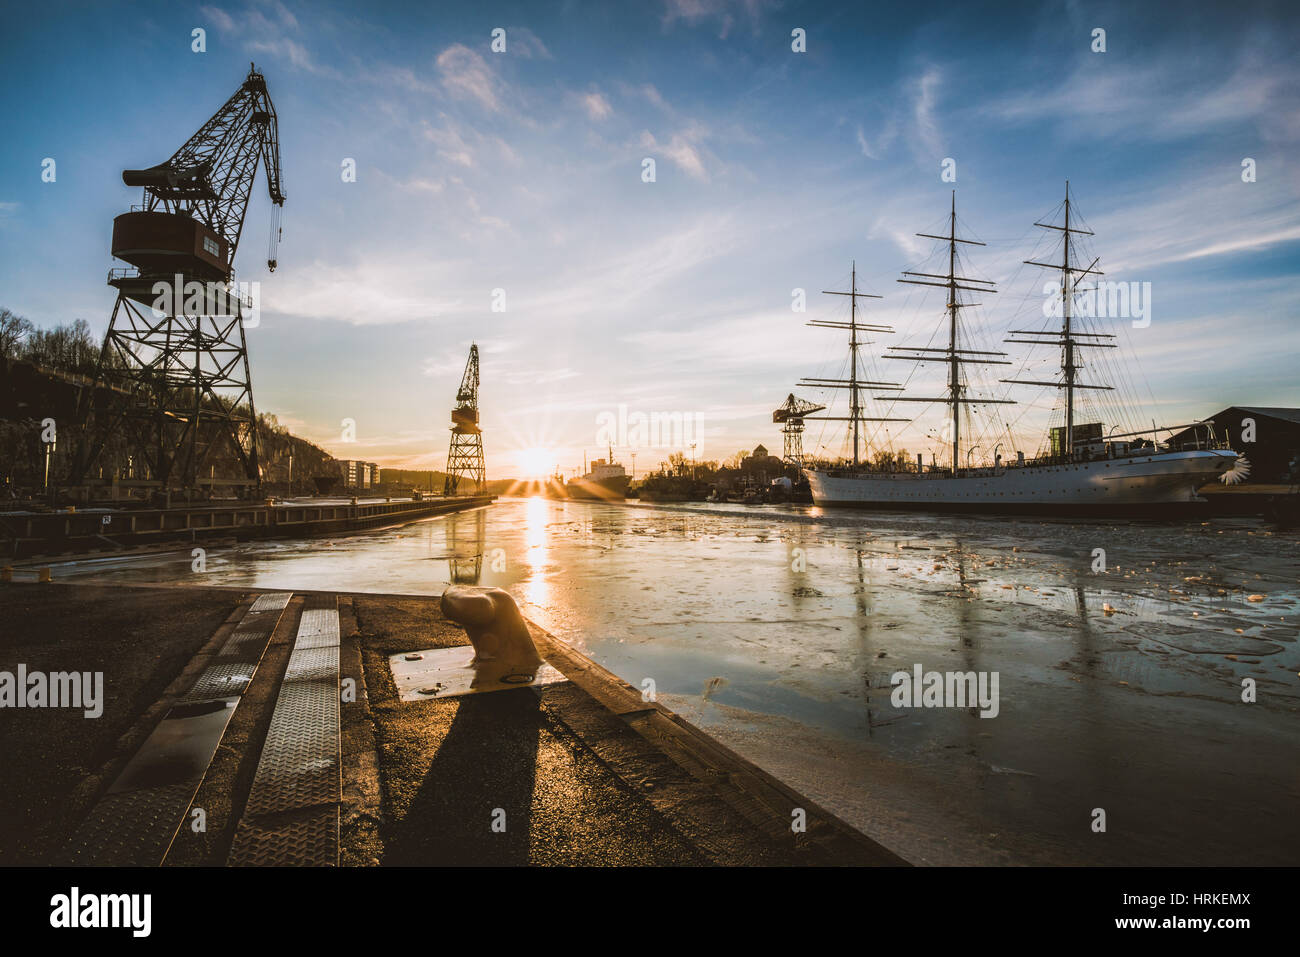 Cranes reminding of the shipbuilding history at the mouth of Aura river in Turku, Finland, February 2017 - Stock Image